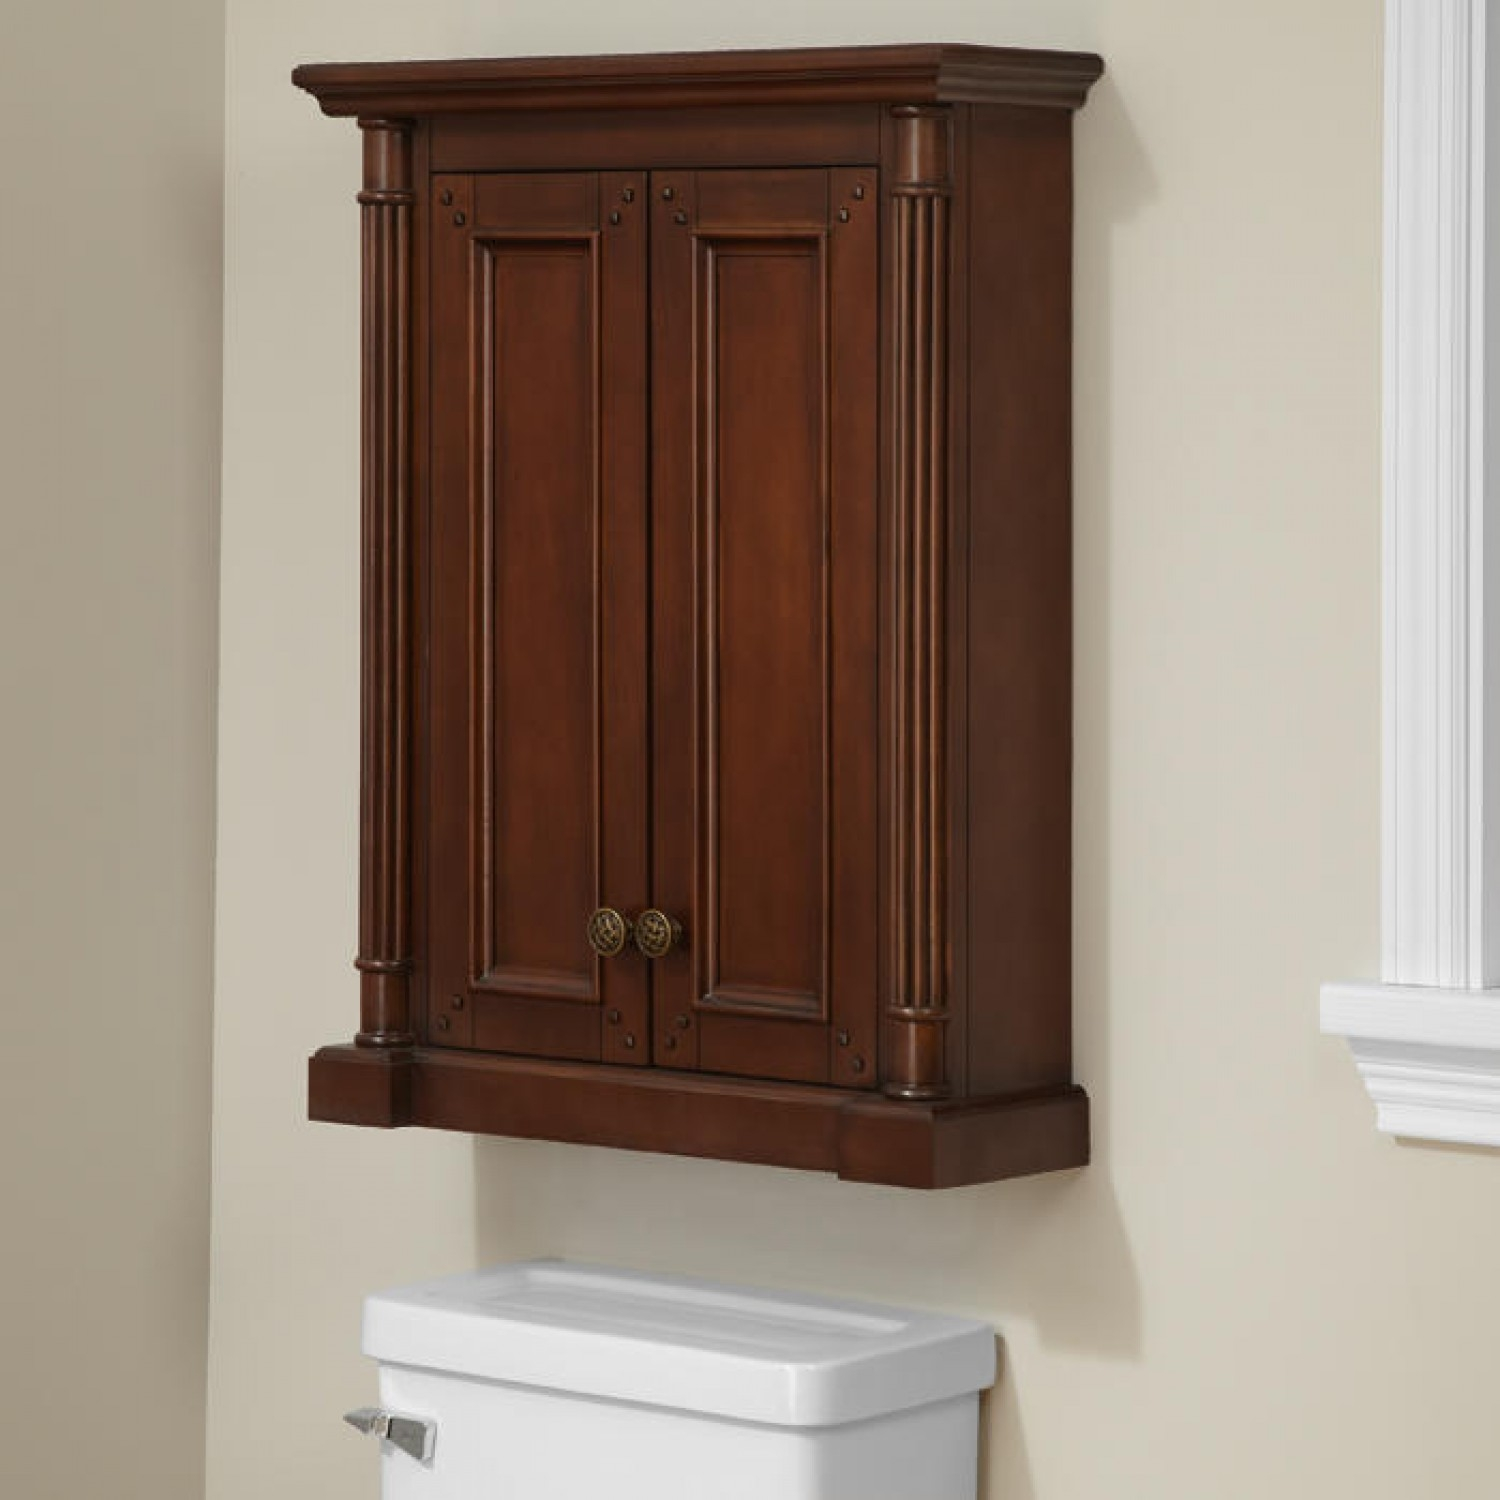 Wooden Medicine Cabinets For Bathrooms